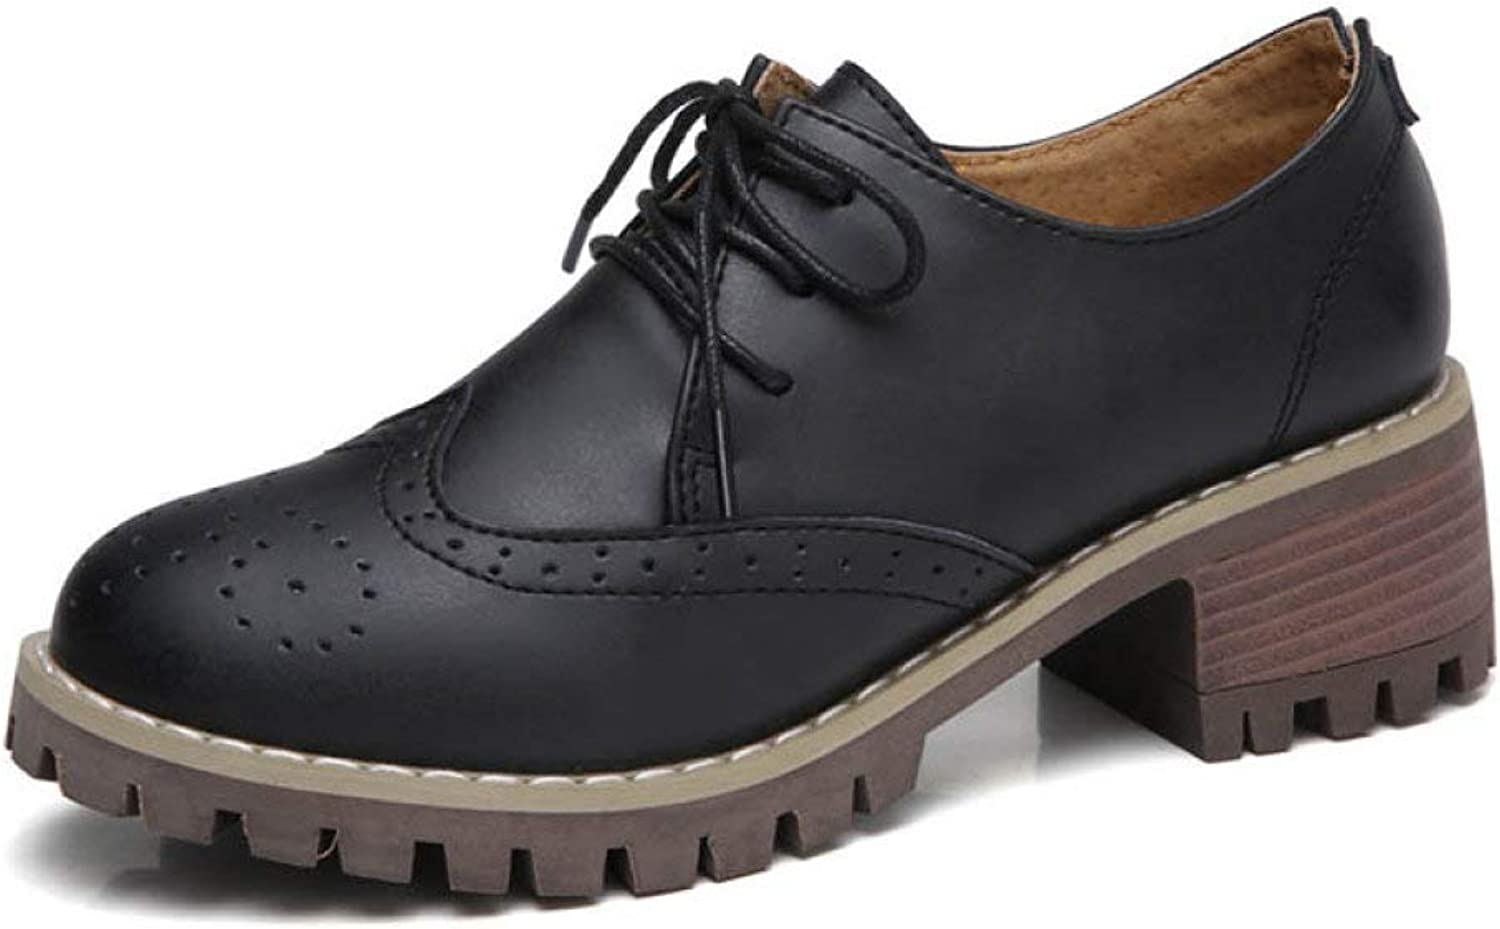 Fay Waters Women's Leather Perforated Pump Oxfords Lace-up Mid Heel Brogue Wingtip Platform shoes